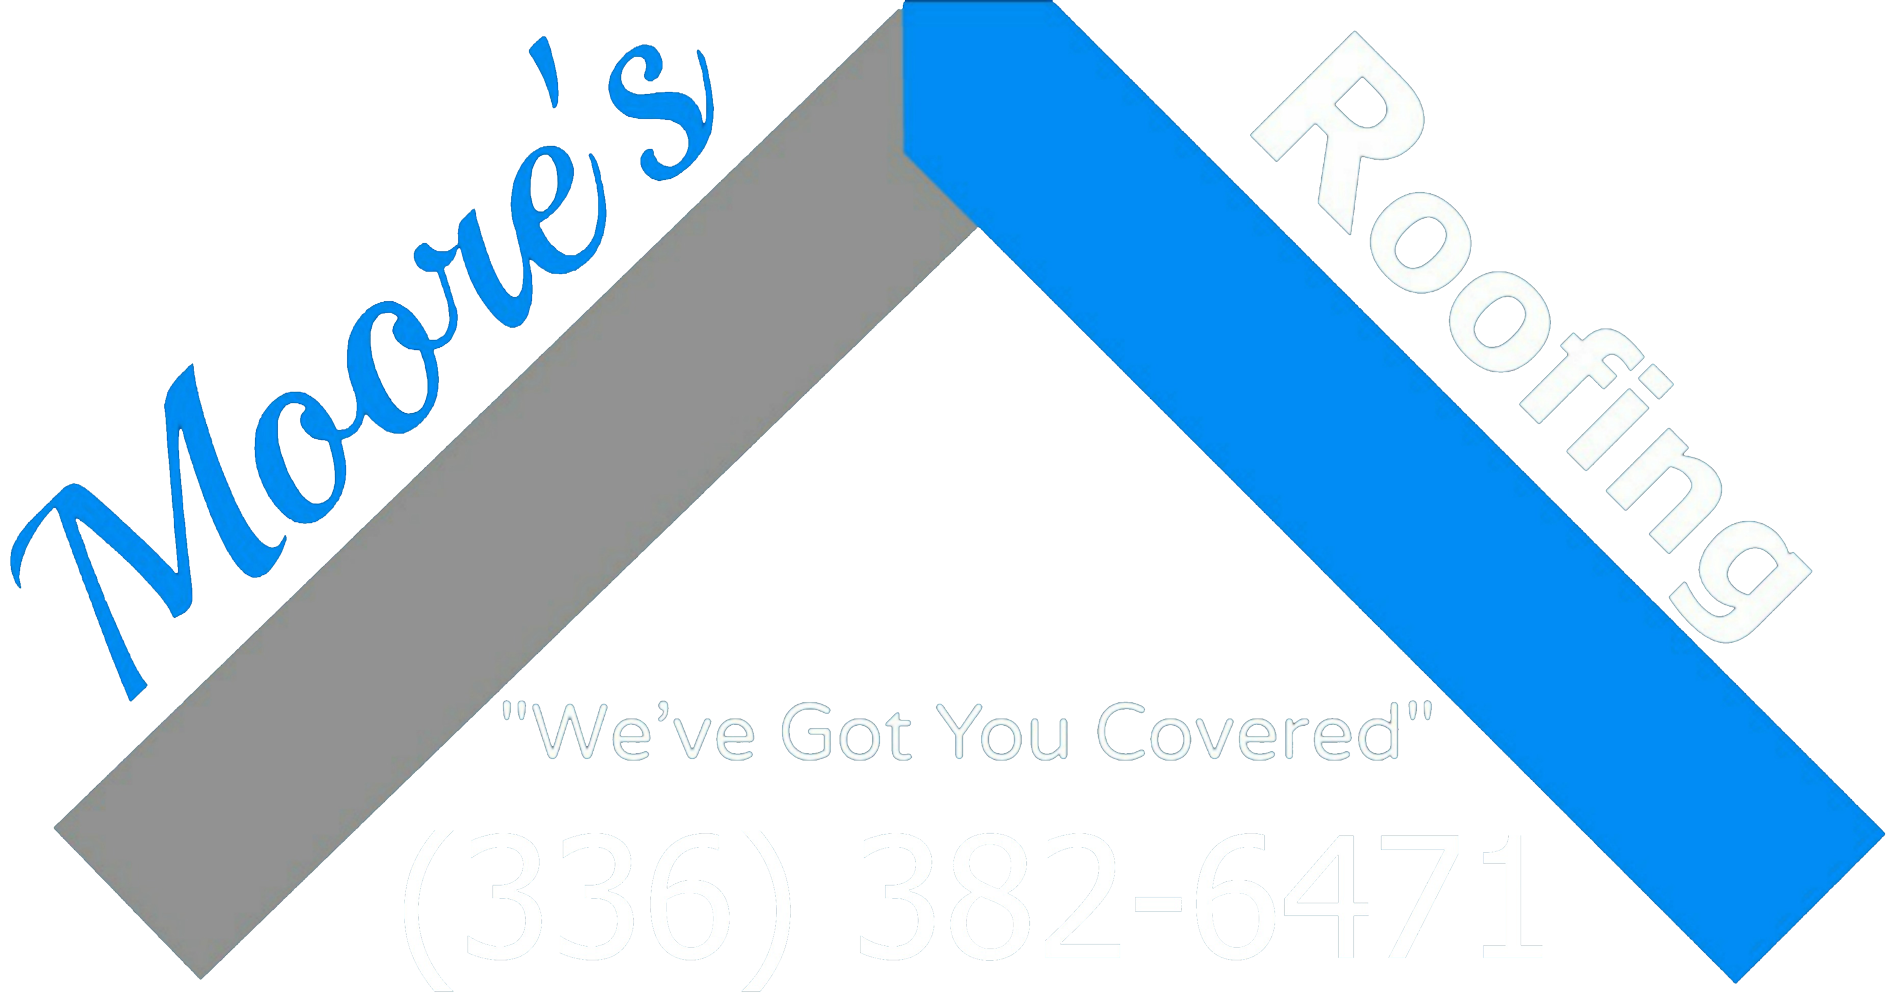 Moore's Roofing